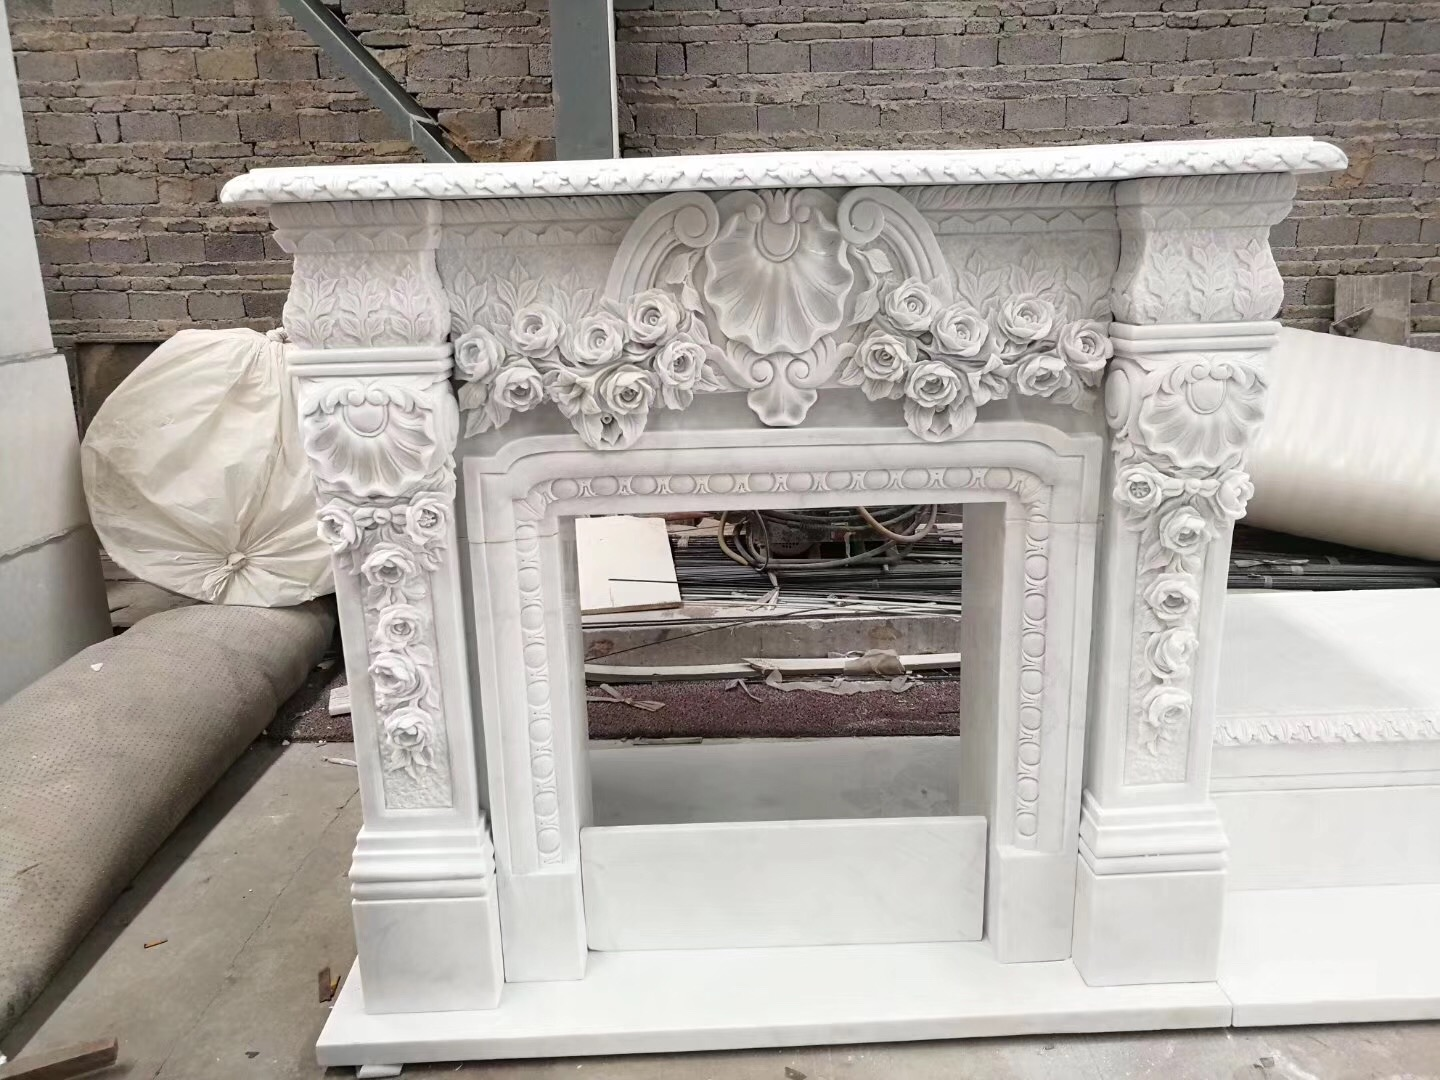 Fireplace,marble fireplace,marble fireplace surround,marble fireplace mantel,fireplace surround,fireplace designs,stone fireplace